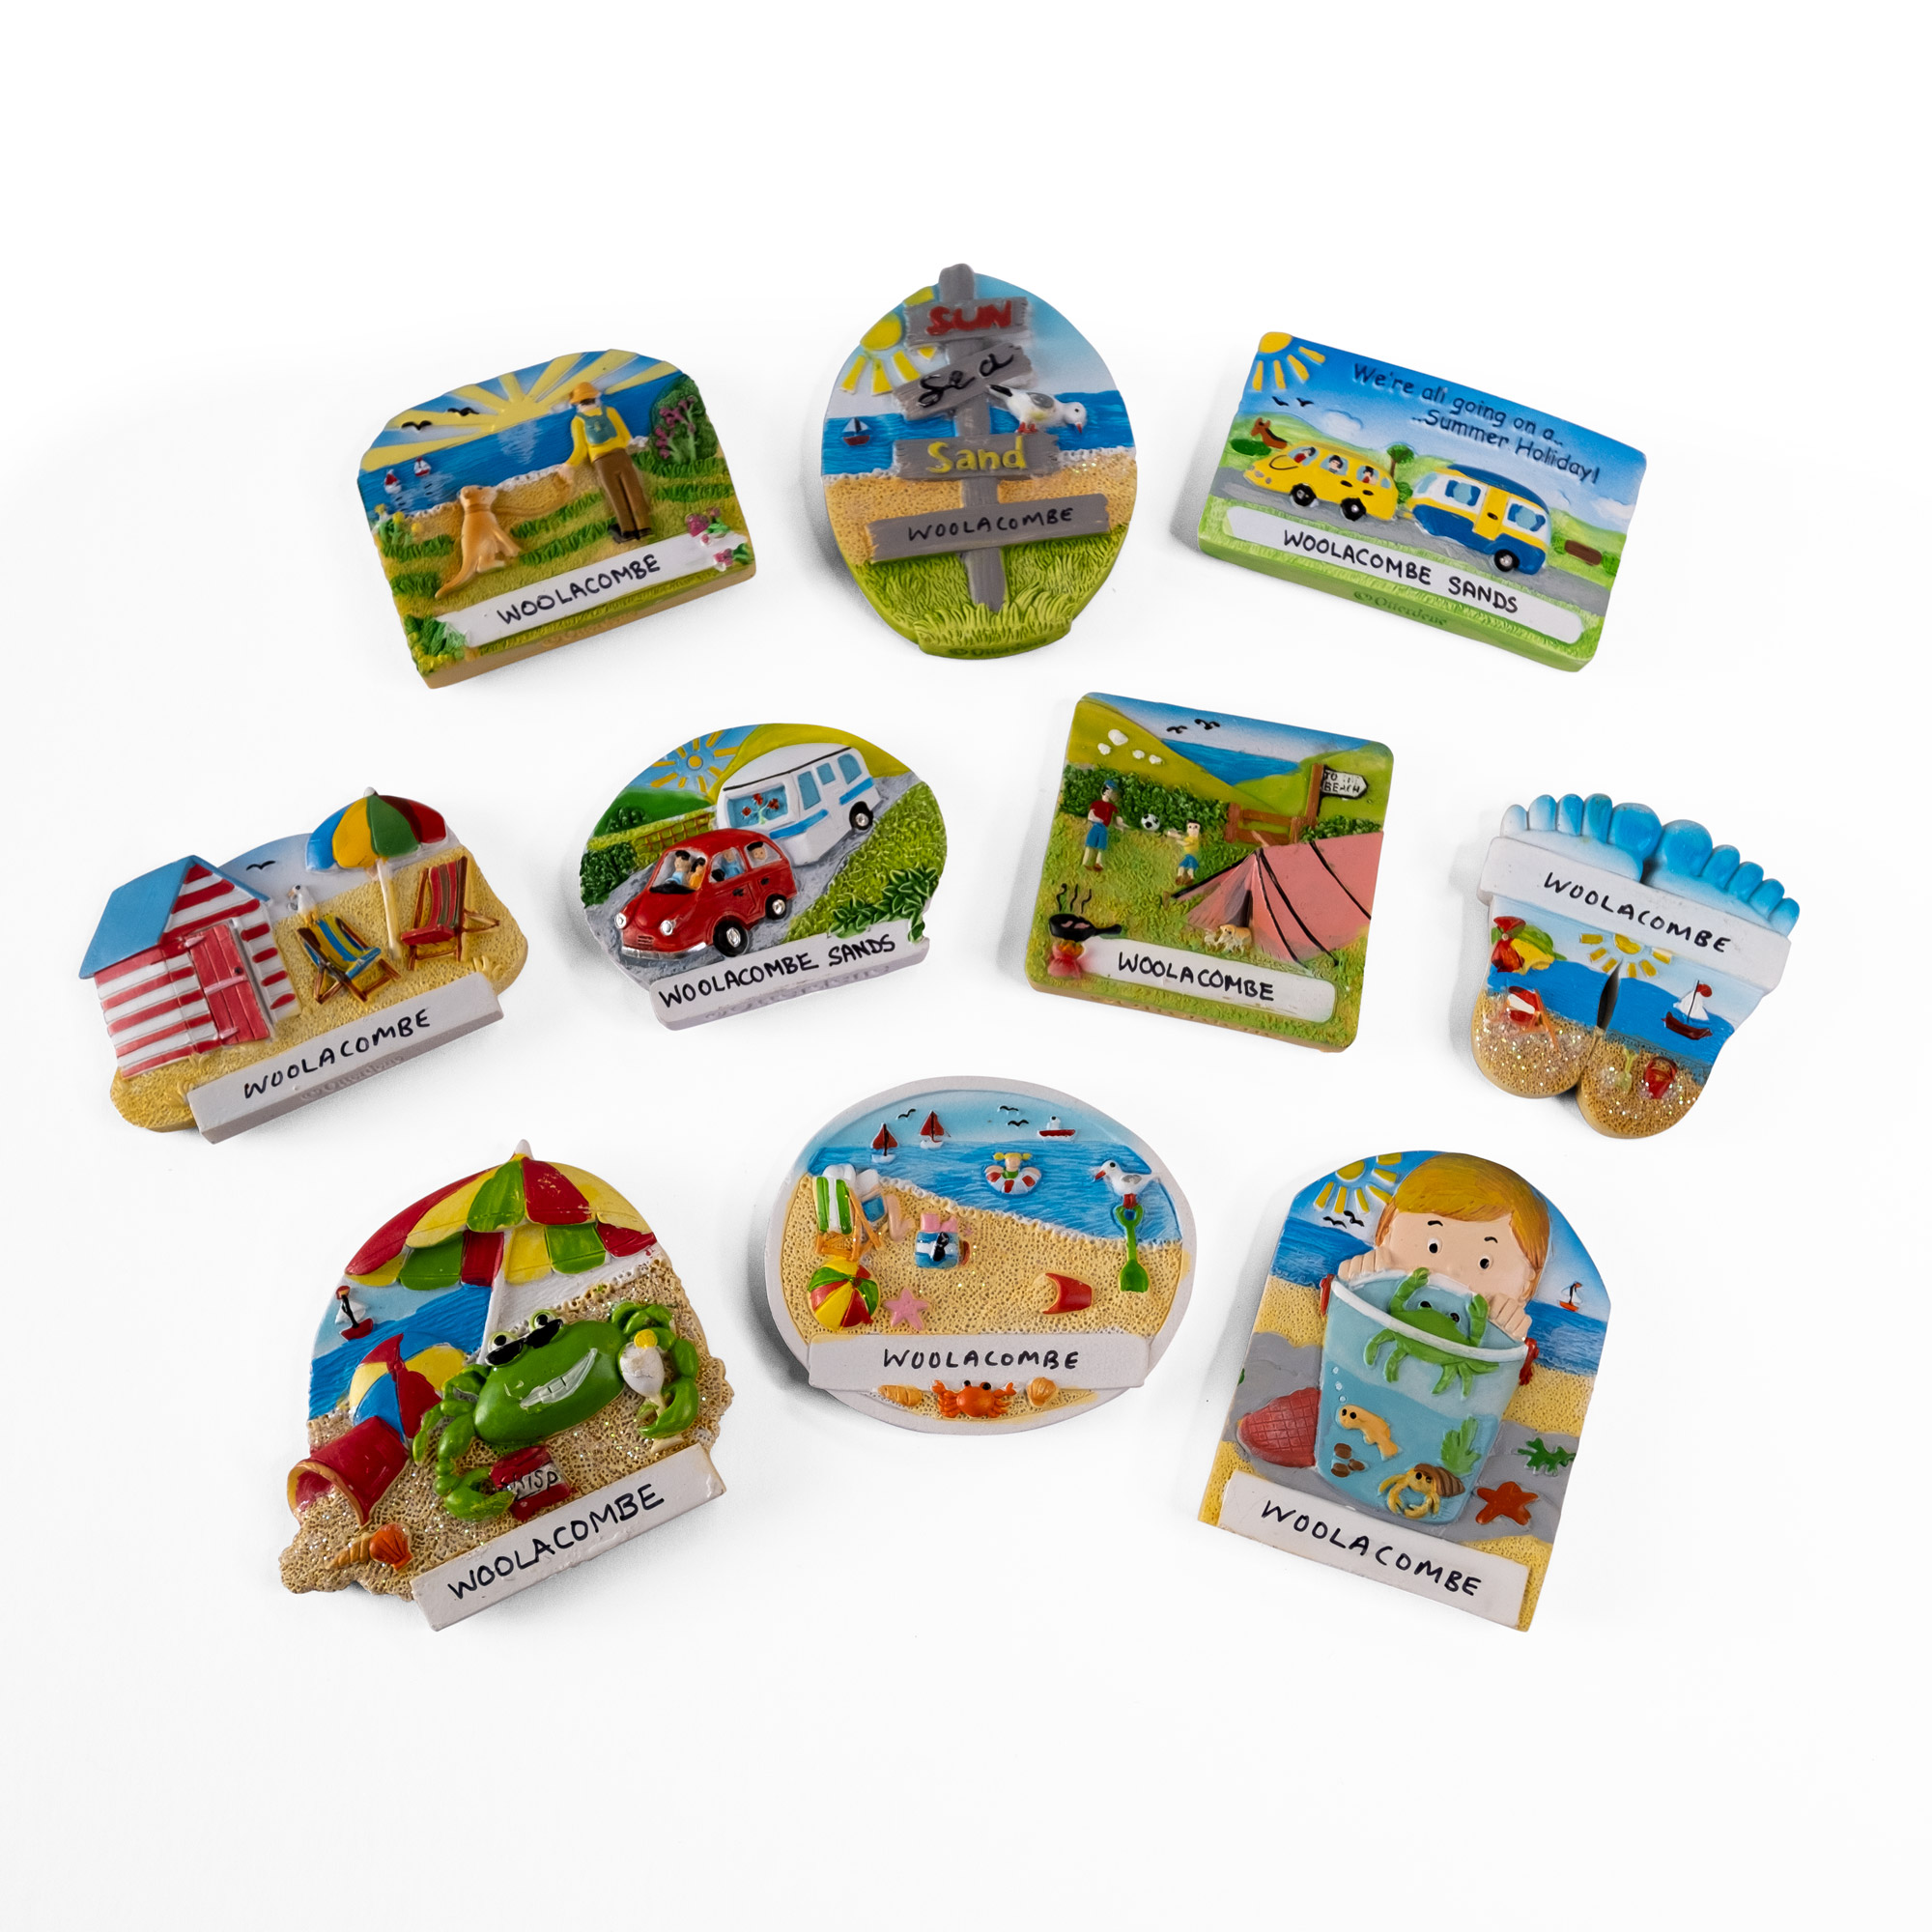 Woolacombe themed fridge magnets 10 individual designs cast in resin